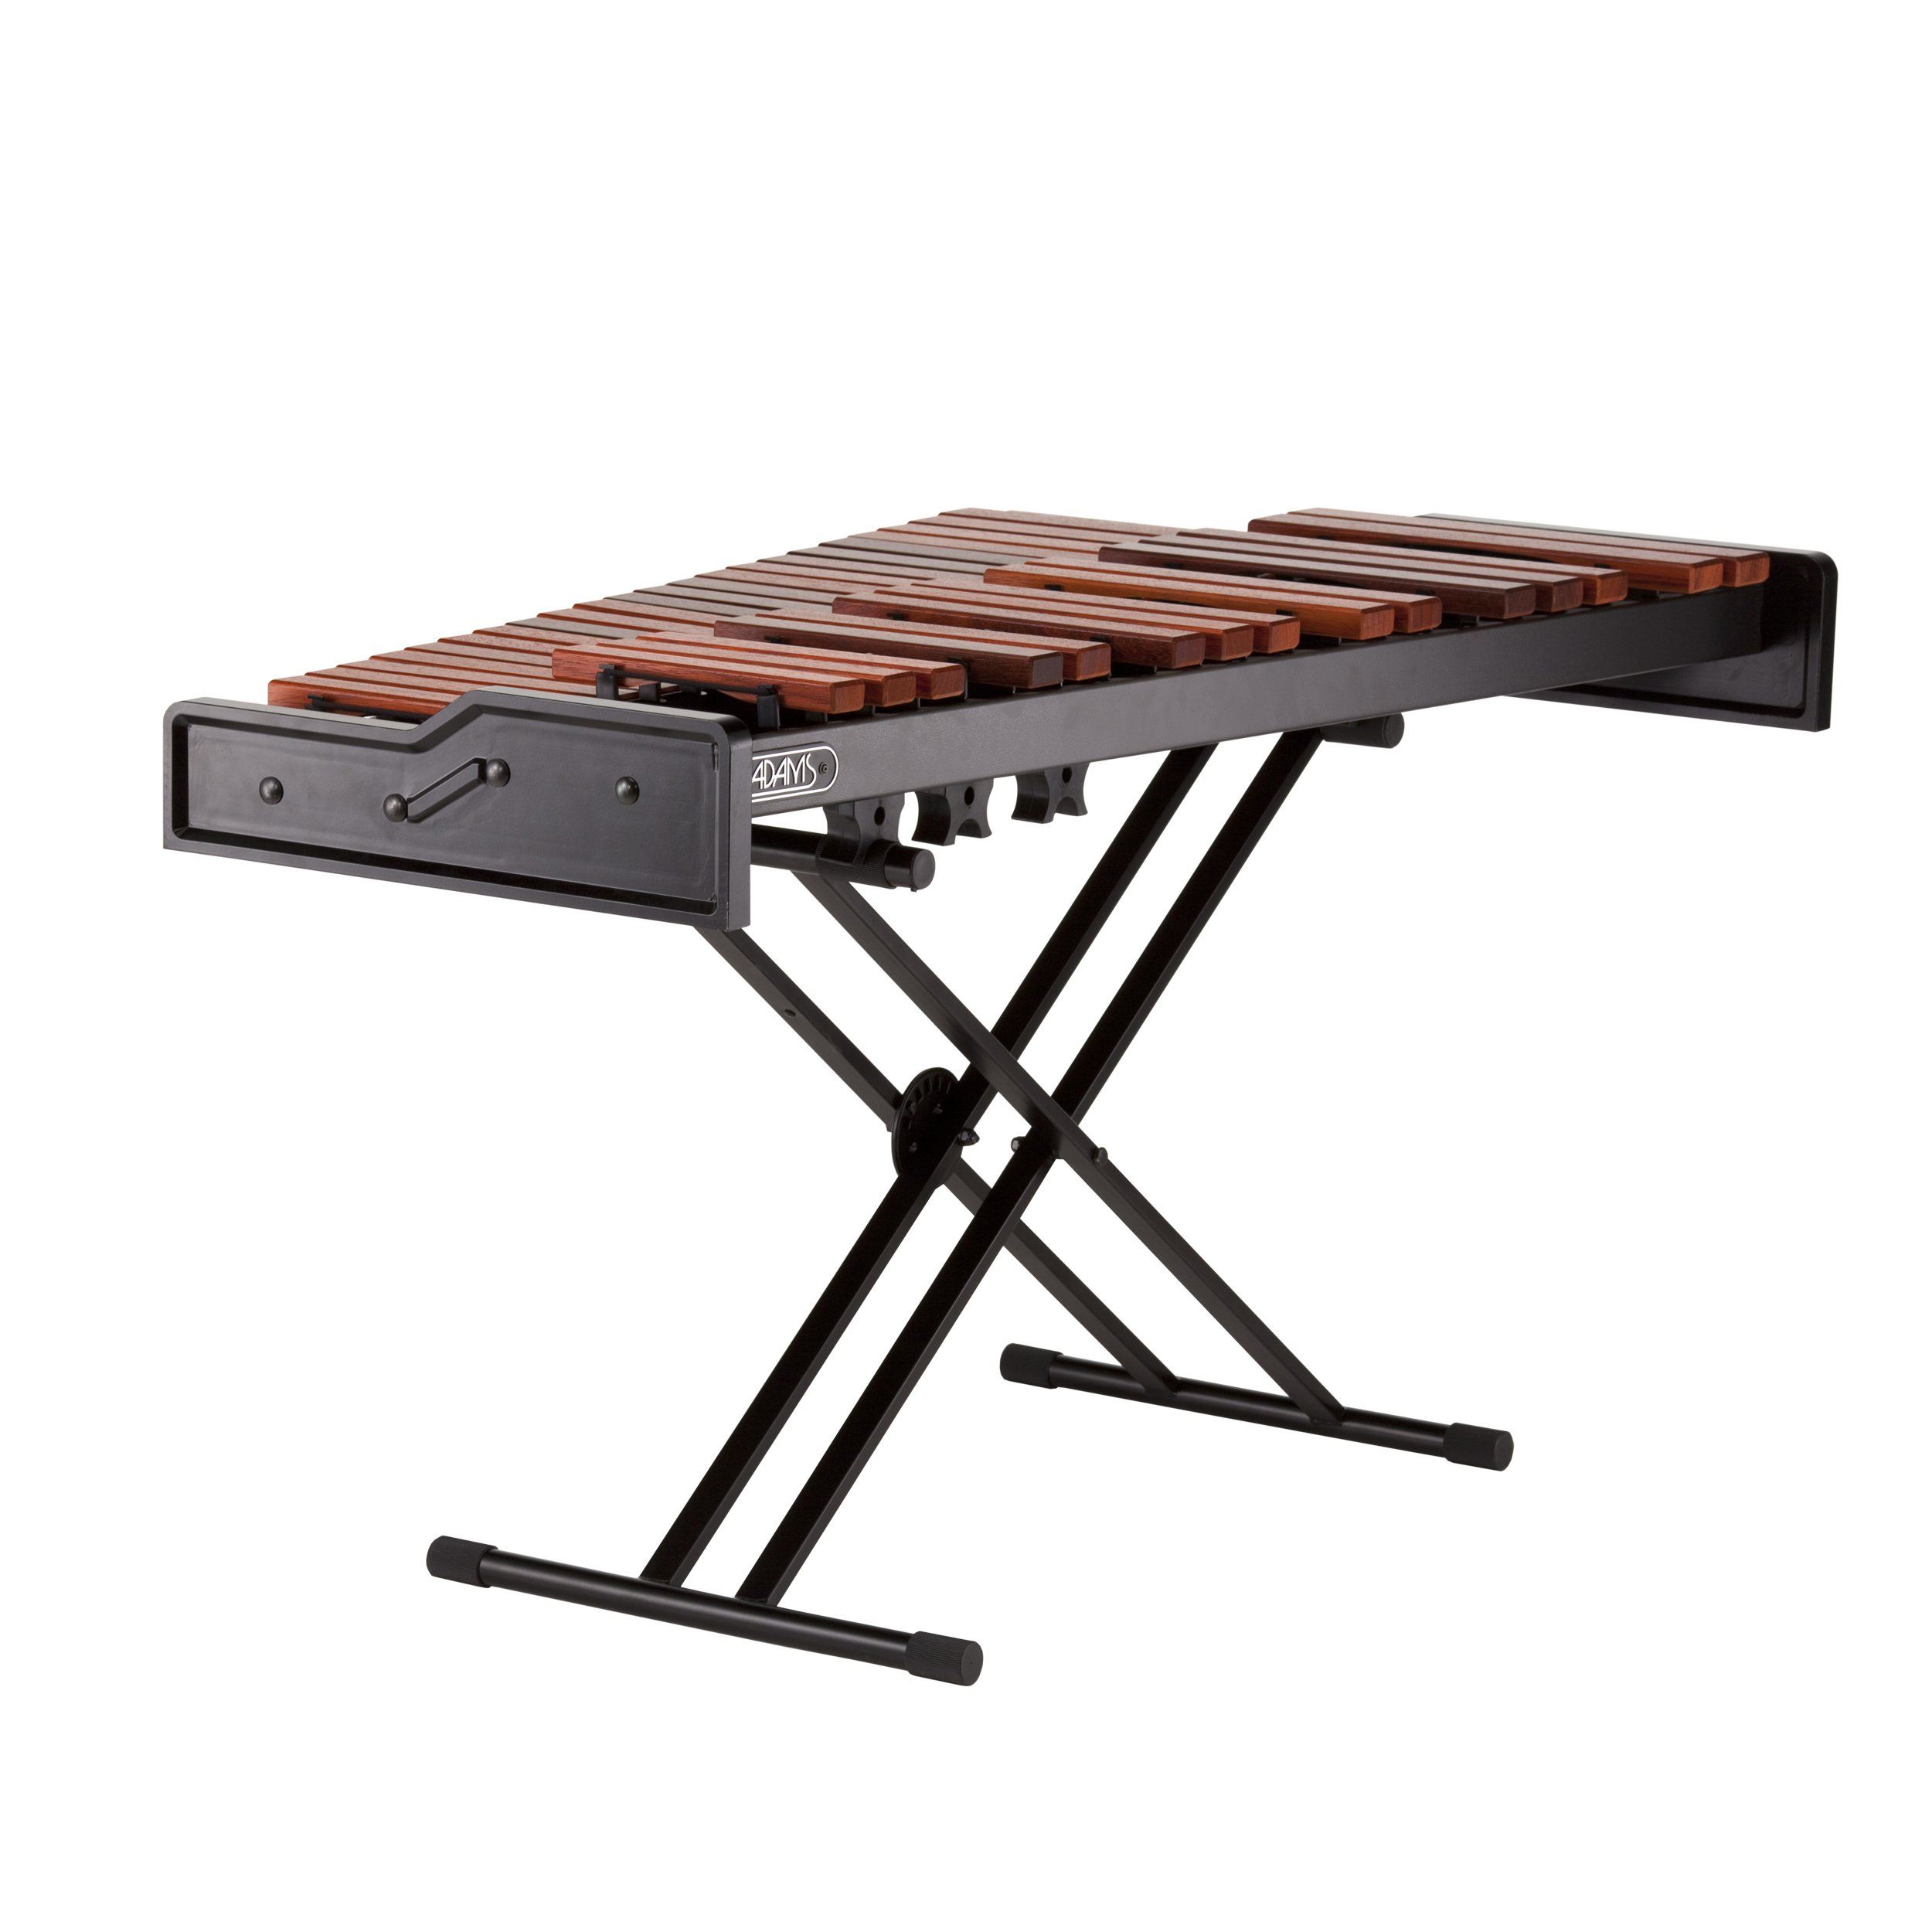 Adams 3.0 Octave Academy Series Marimba with Stand